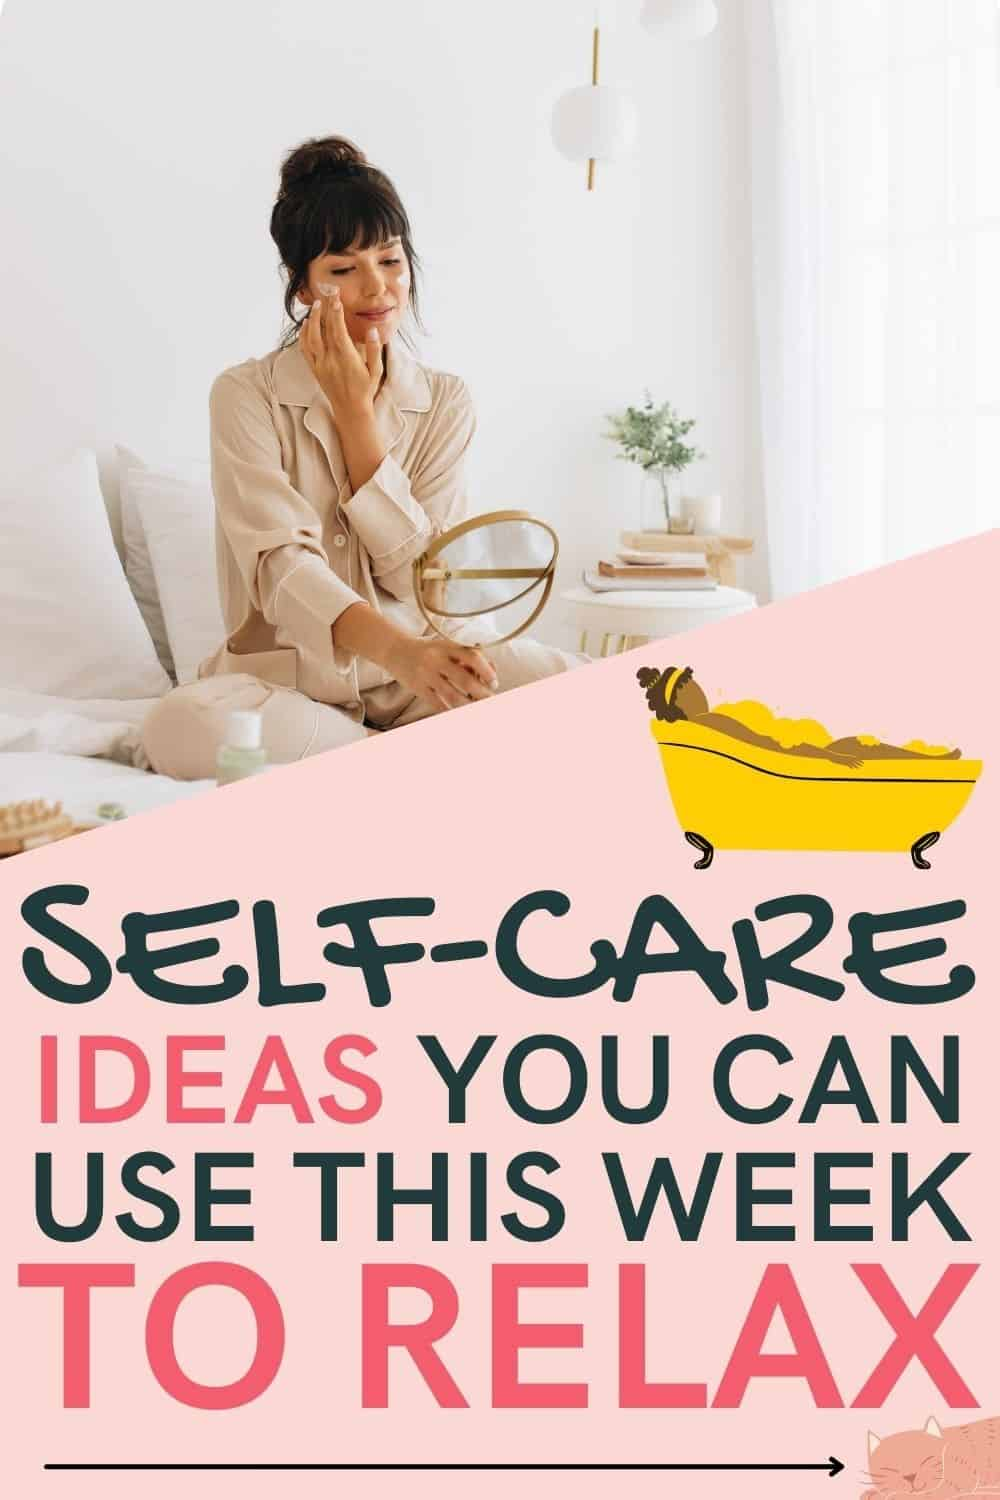 50 best self-care ideas. How to practice self-care daily. The best self-care ideas for a bad day. 50 Self-Care Sunday Activities and Ideas - activities and ideas for a self care Sunday routine to slay your entire week. Get motivation monday by engaging in self care on Sunday.